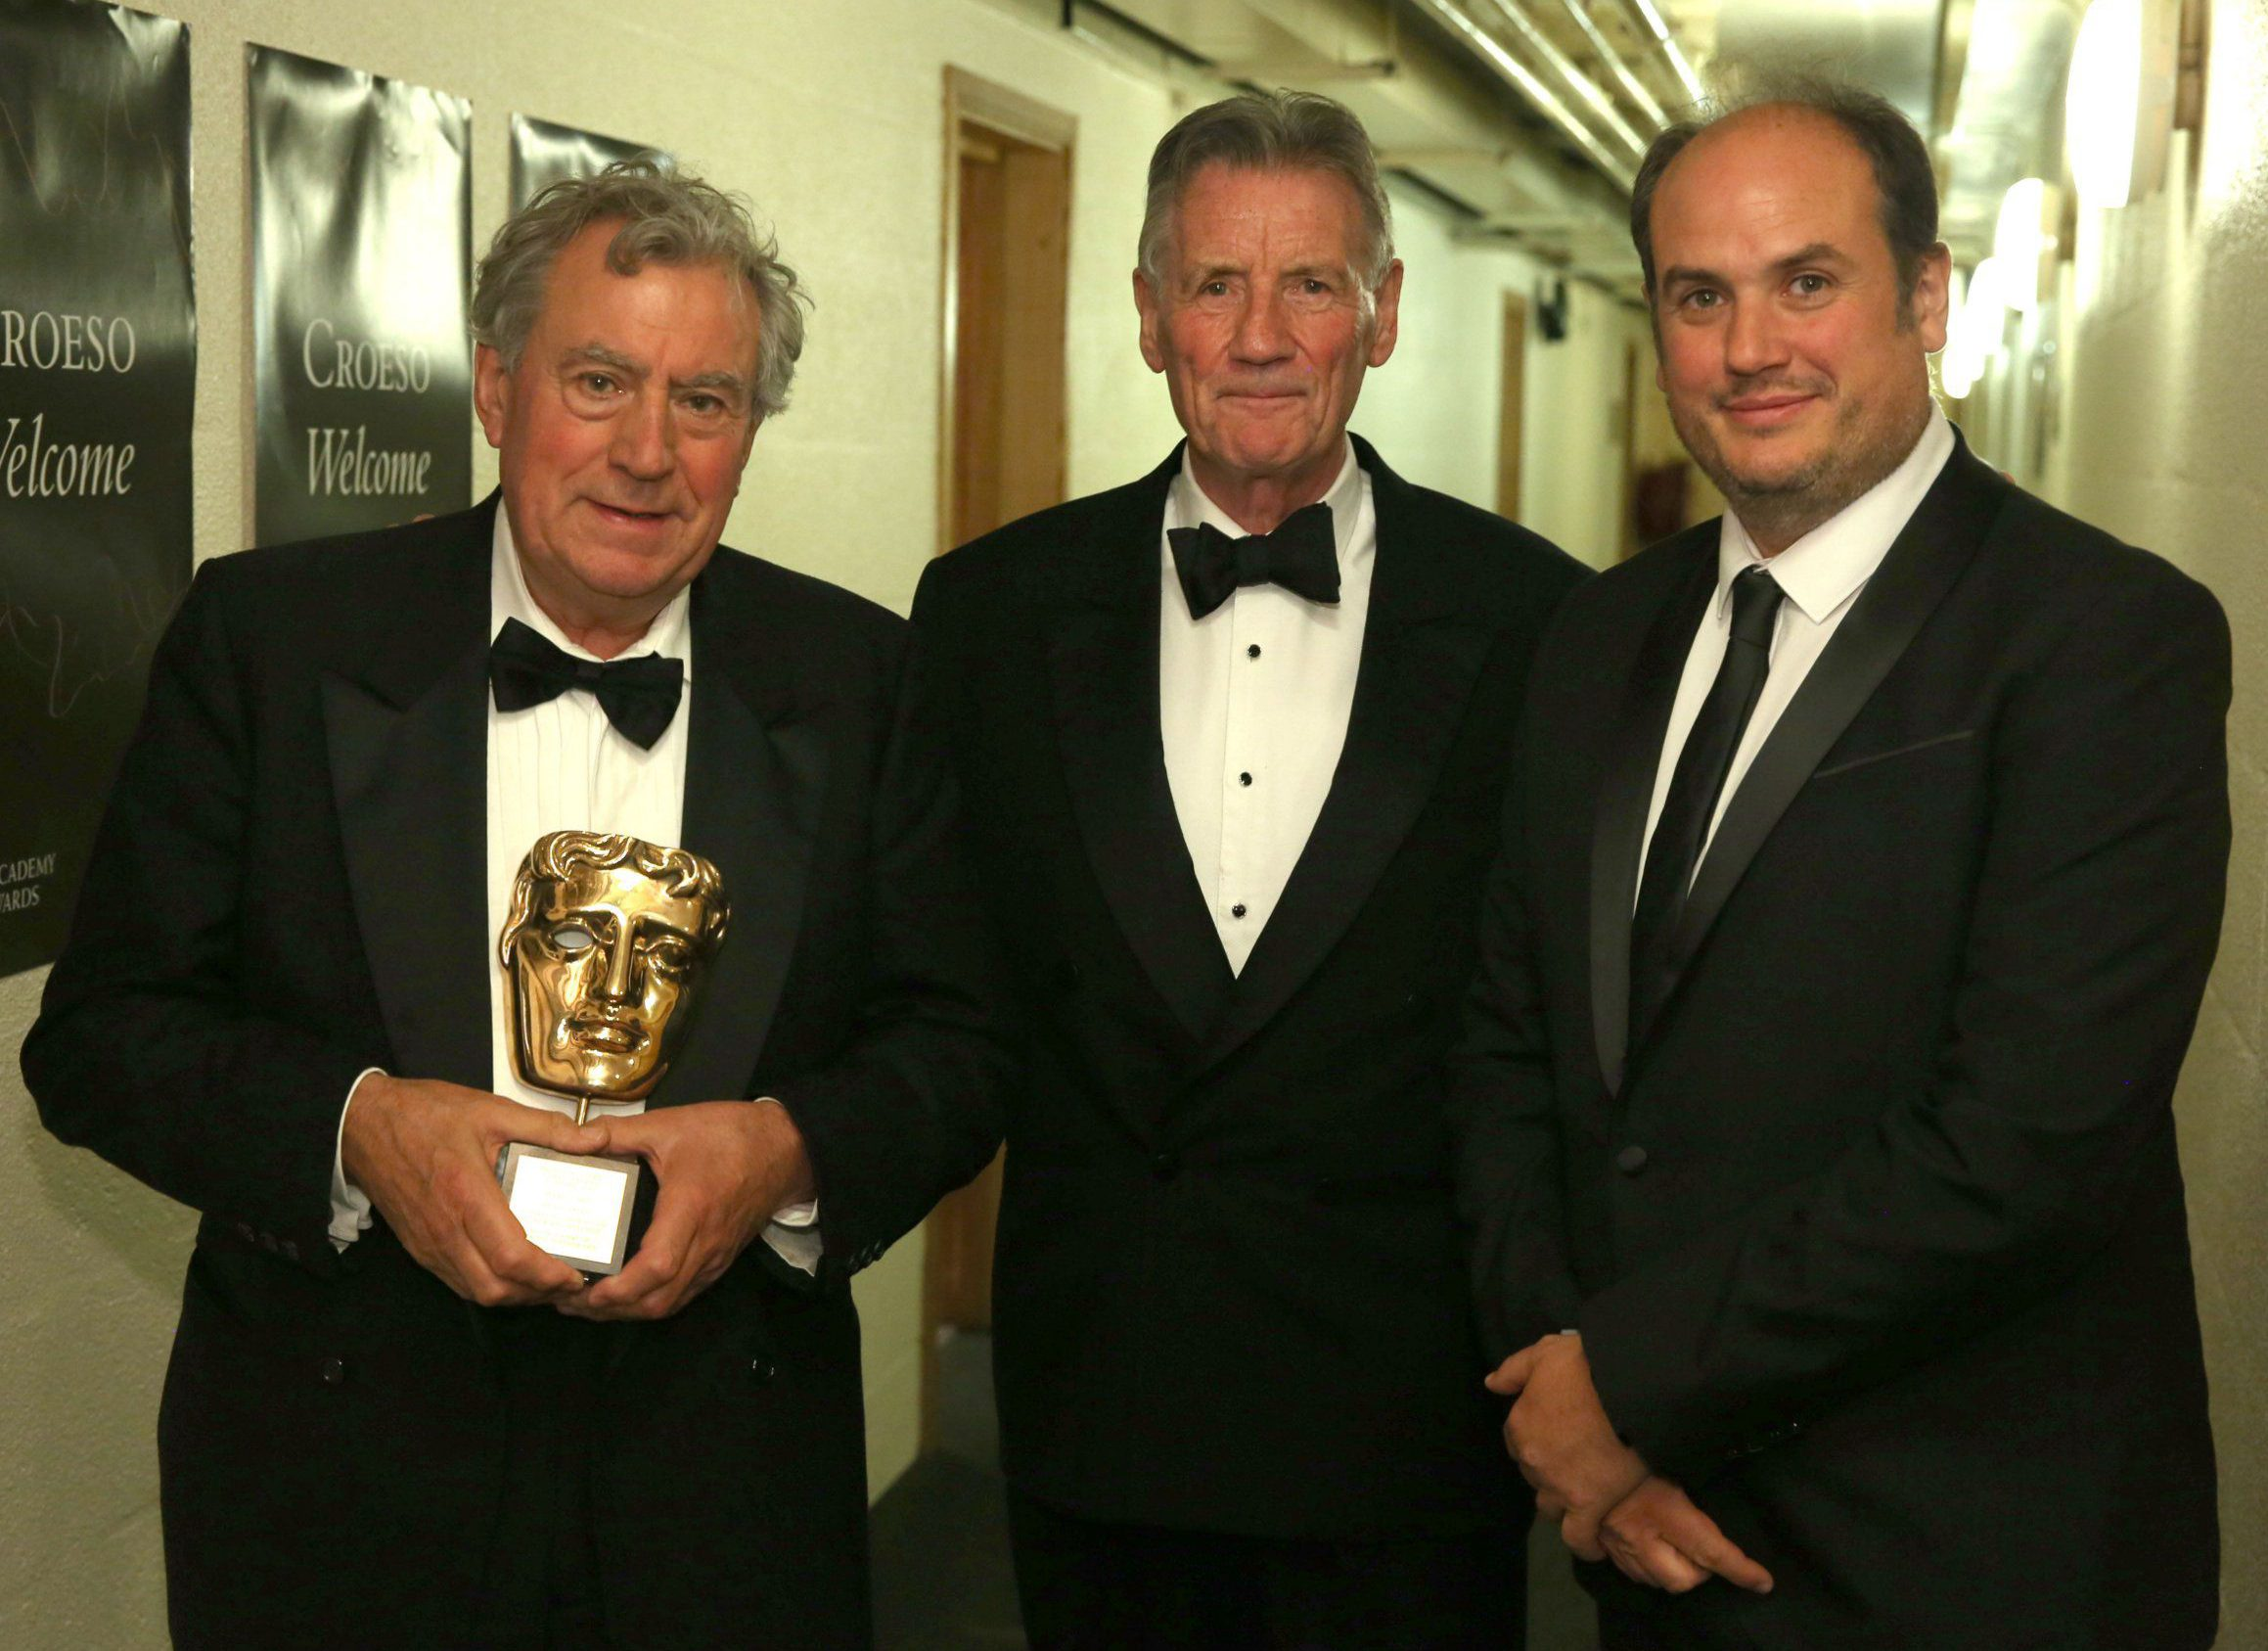 Terry Jones makes first public appearance since announcing he is battling dementia to collect BAFTA